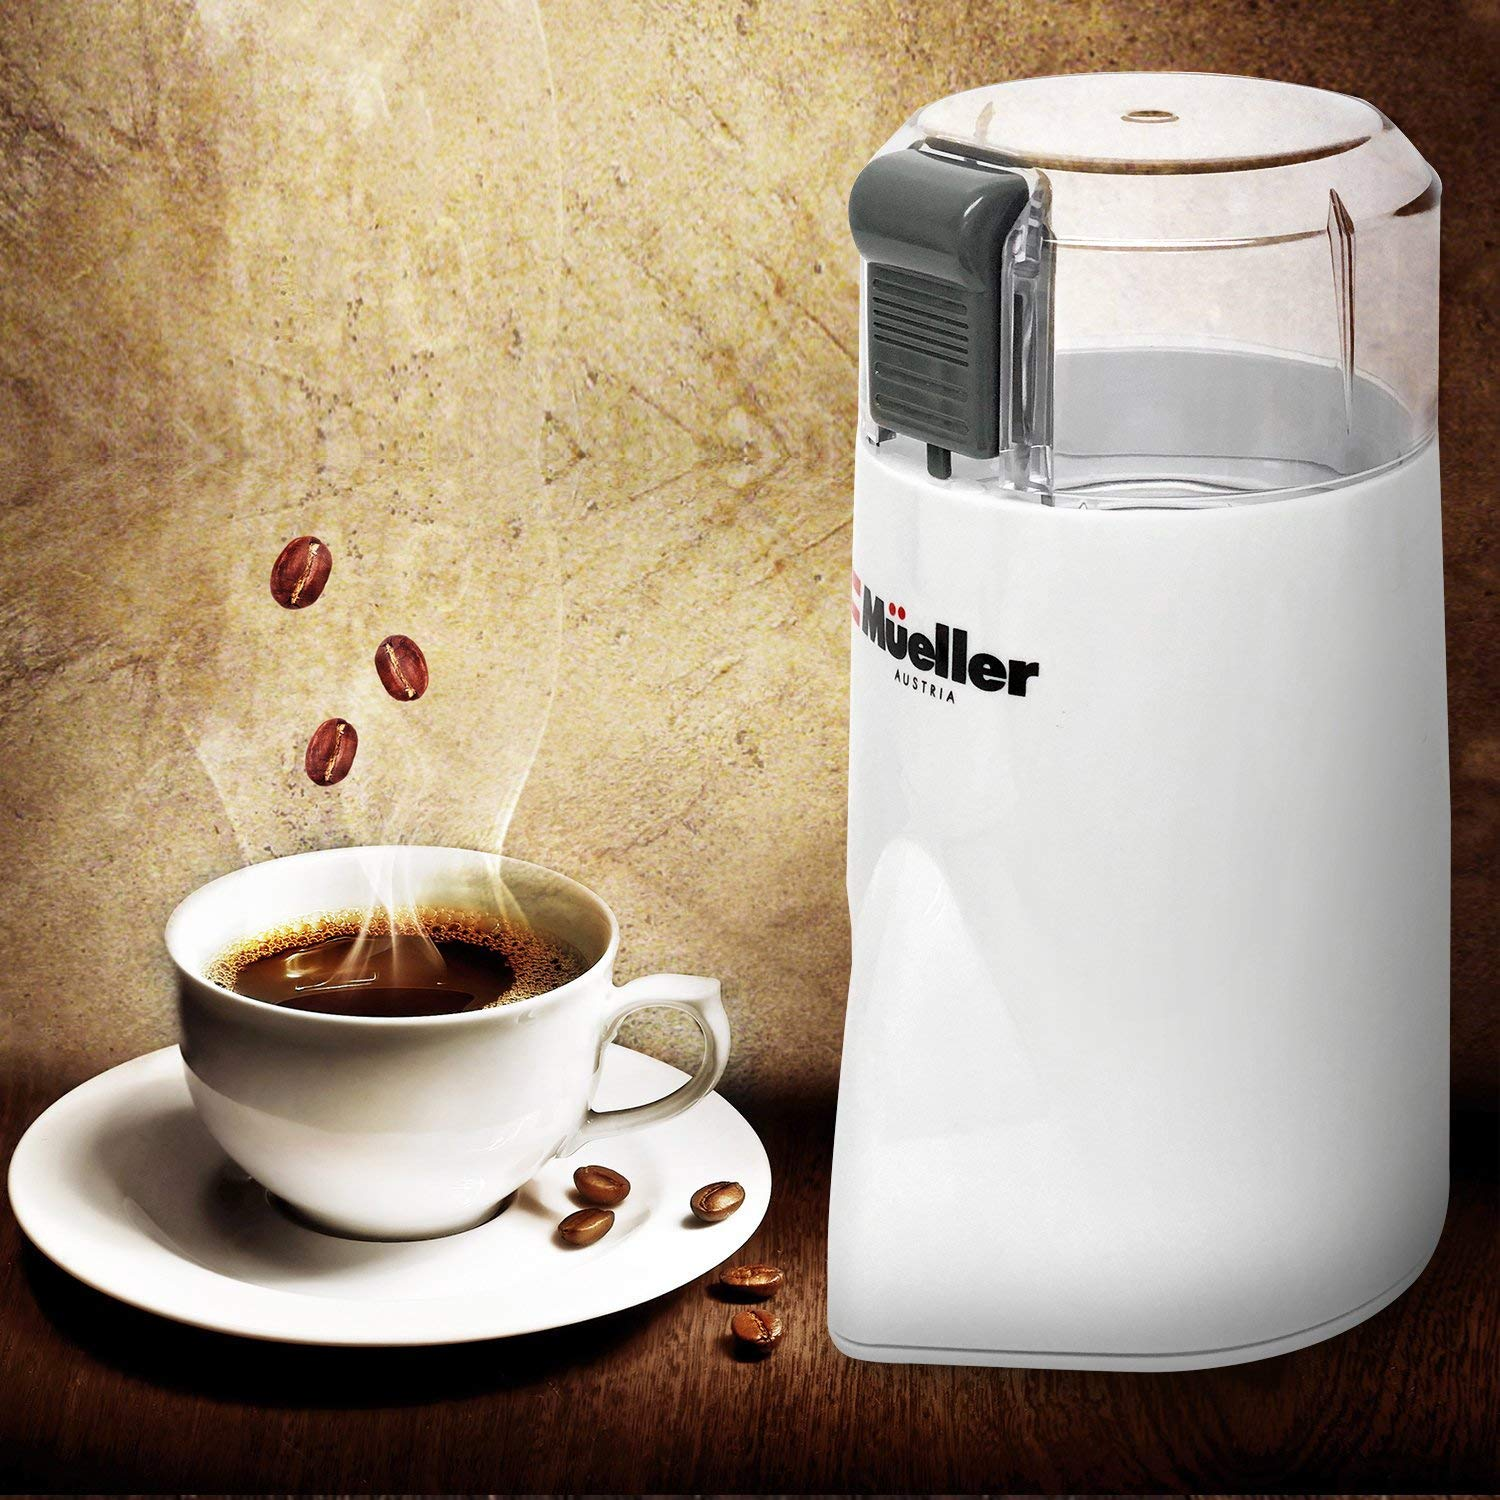 Mueller HyperGrind Precision Electric Coffee Grinder Mill with Large Grinding Capacity and HD Motor also for Spices, Herbs, Nuts, Grains and More by Mueller Austria (Image #2)